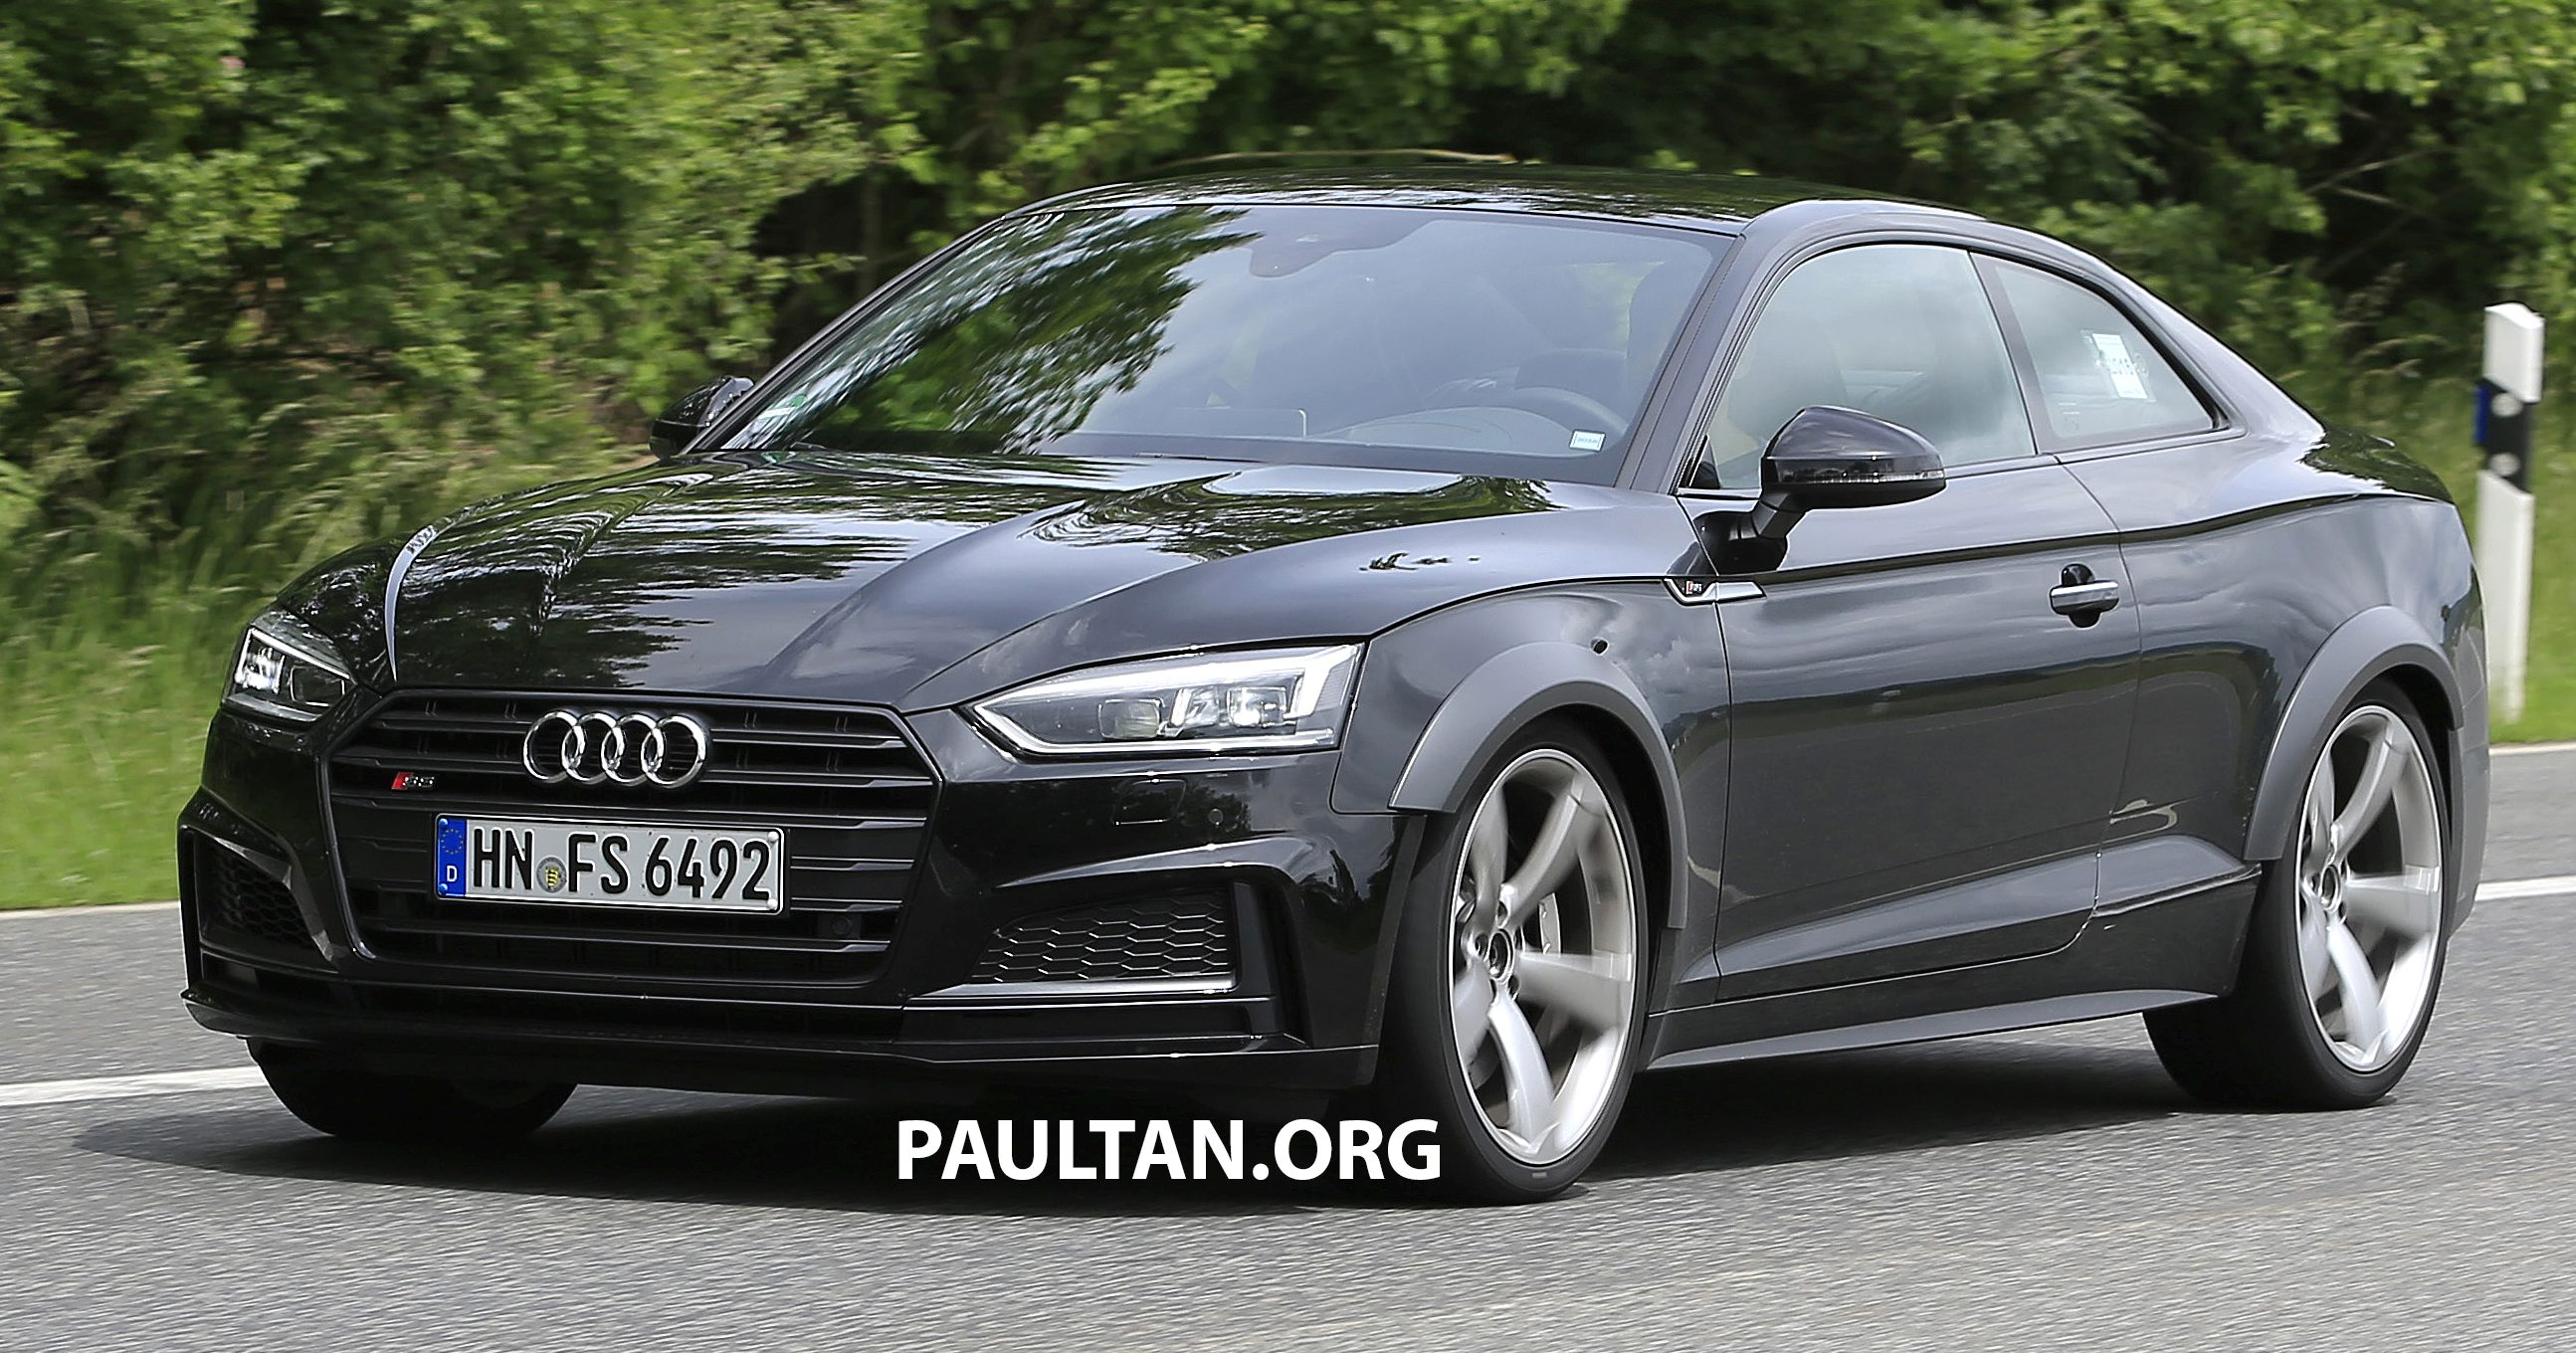 Spyshots Audi Rs5 Seen Testing In S5 Overalls Image 509231